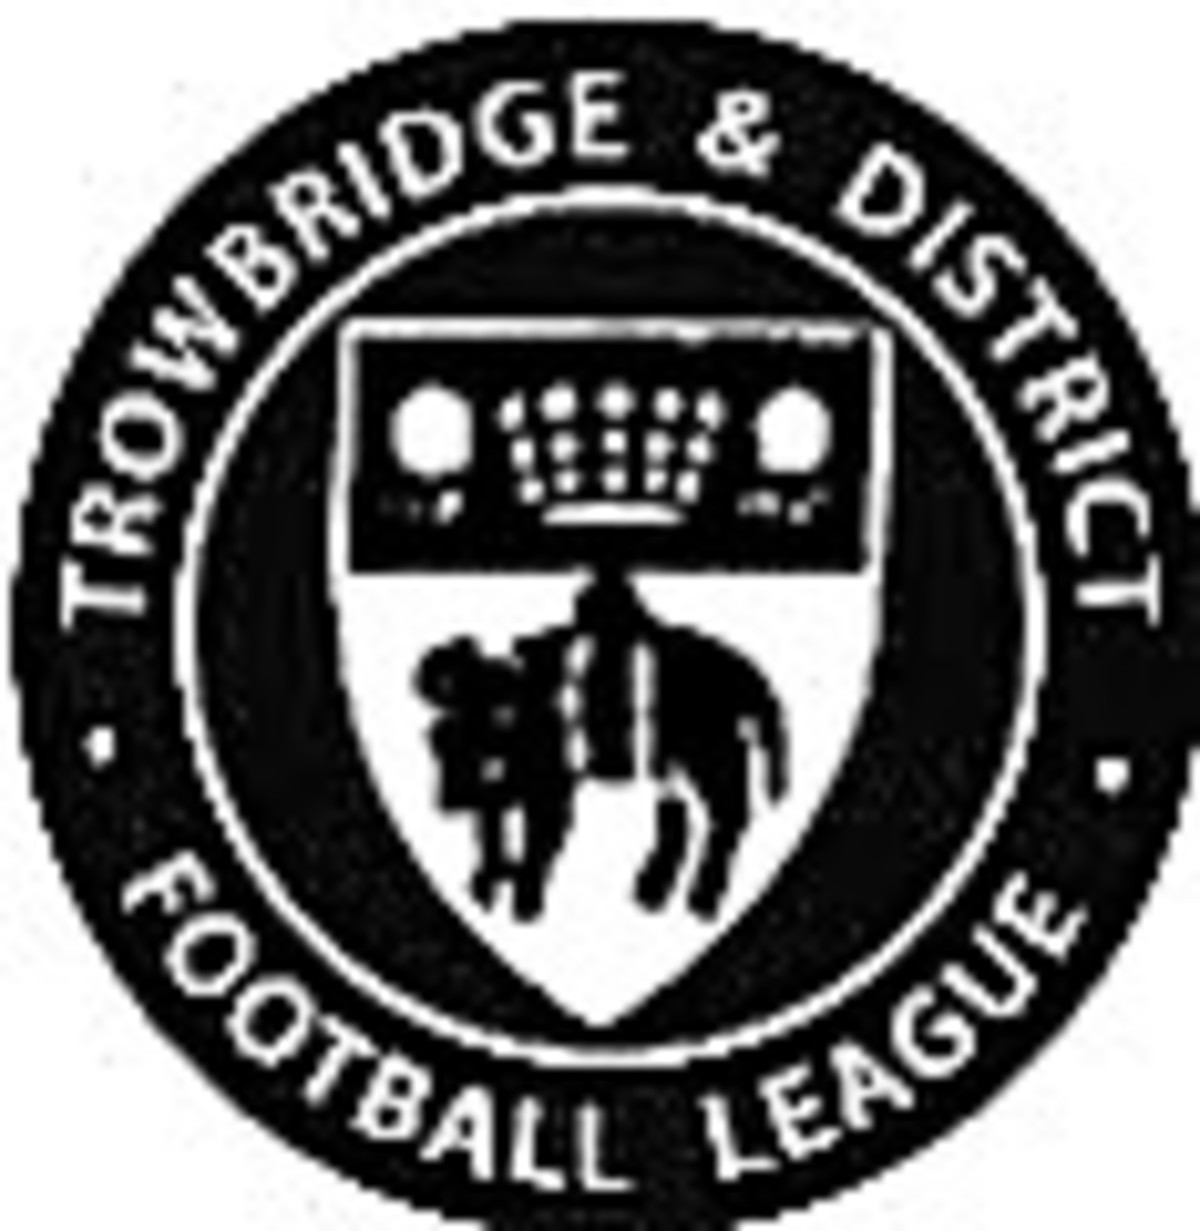 TROWBRIDGE & DISTRICT LEAGUE KNOCKOUT CUP: Lanfear leaves mark on cup semi